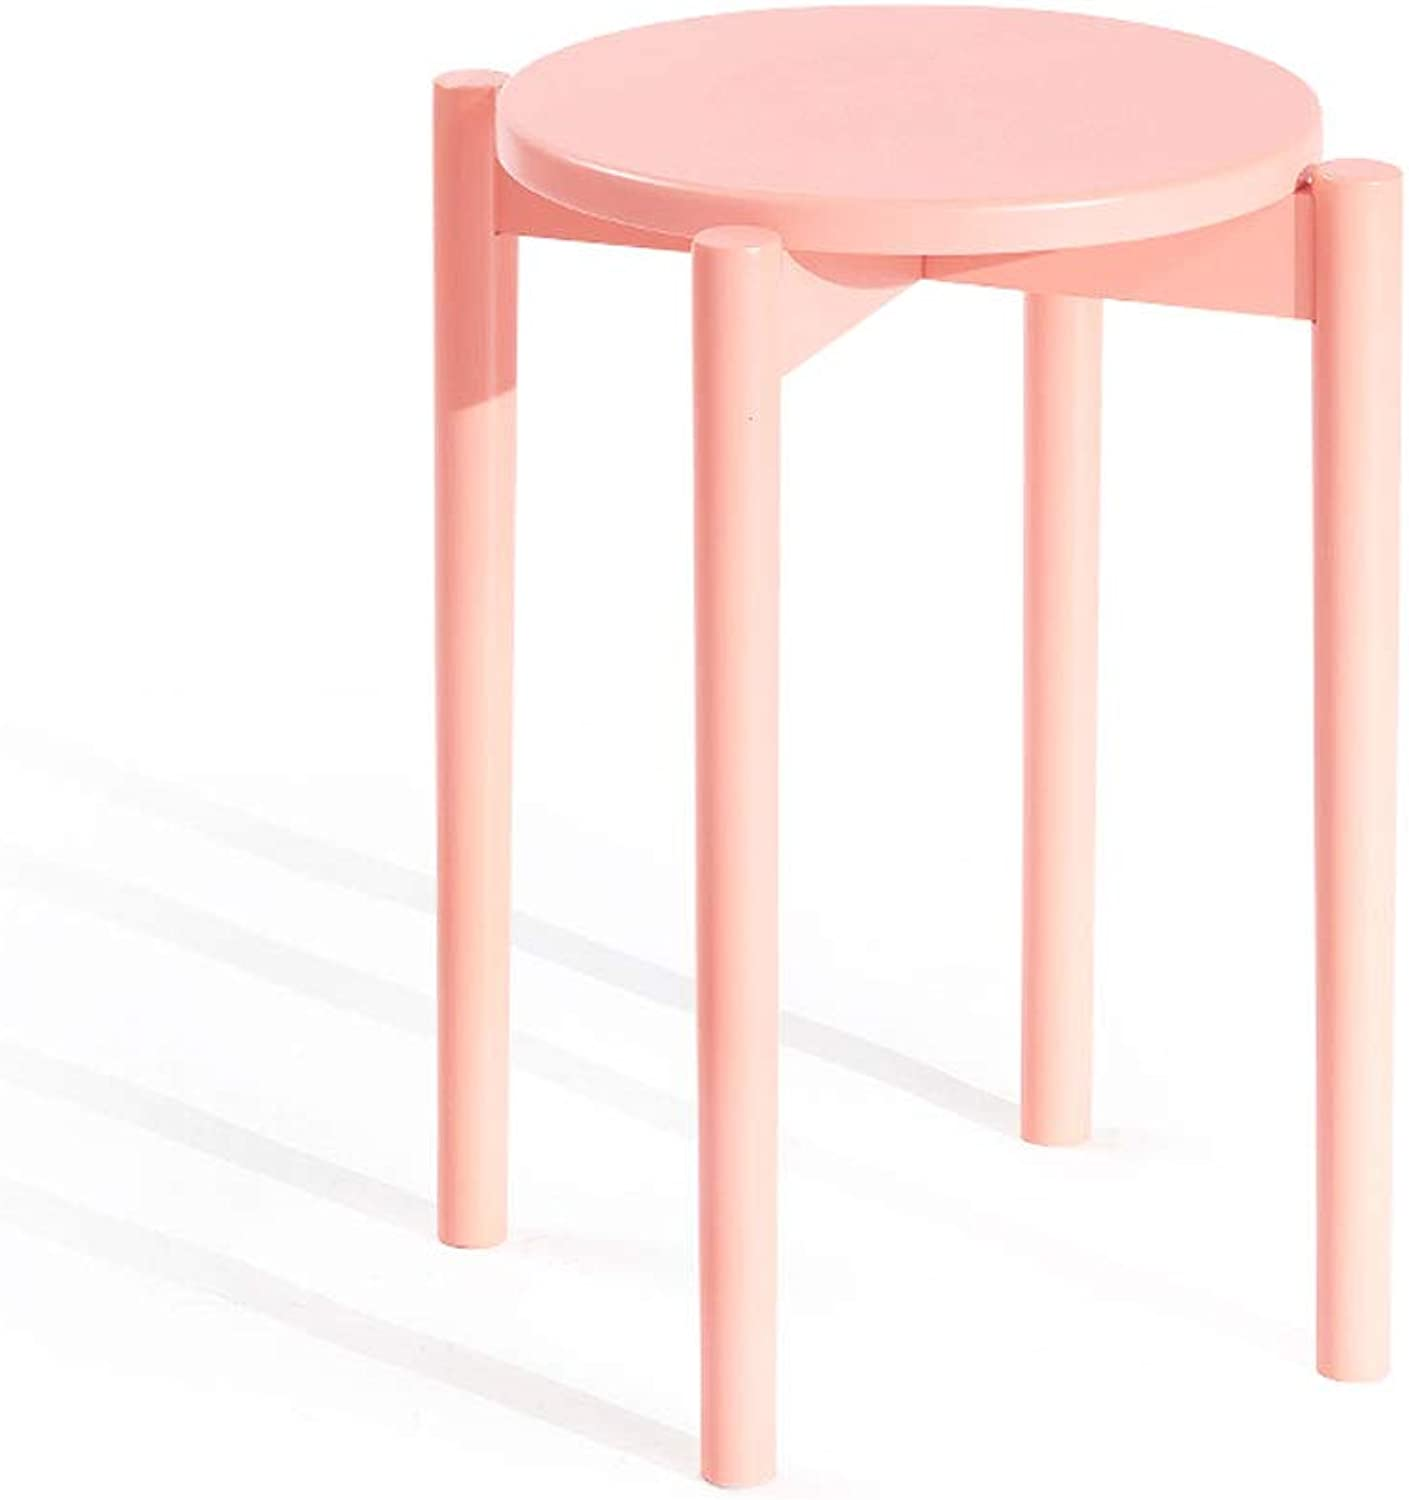 Dressing Stool, Modern Round Small Solid Wood Bench Creative Dining Table Stool Seat Makeup Vanity Stool Chair (color   Pink)